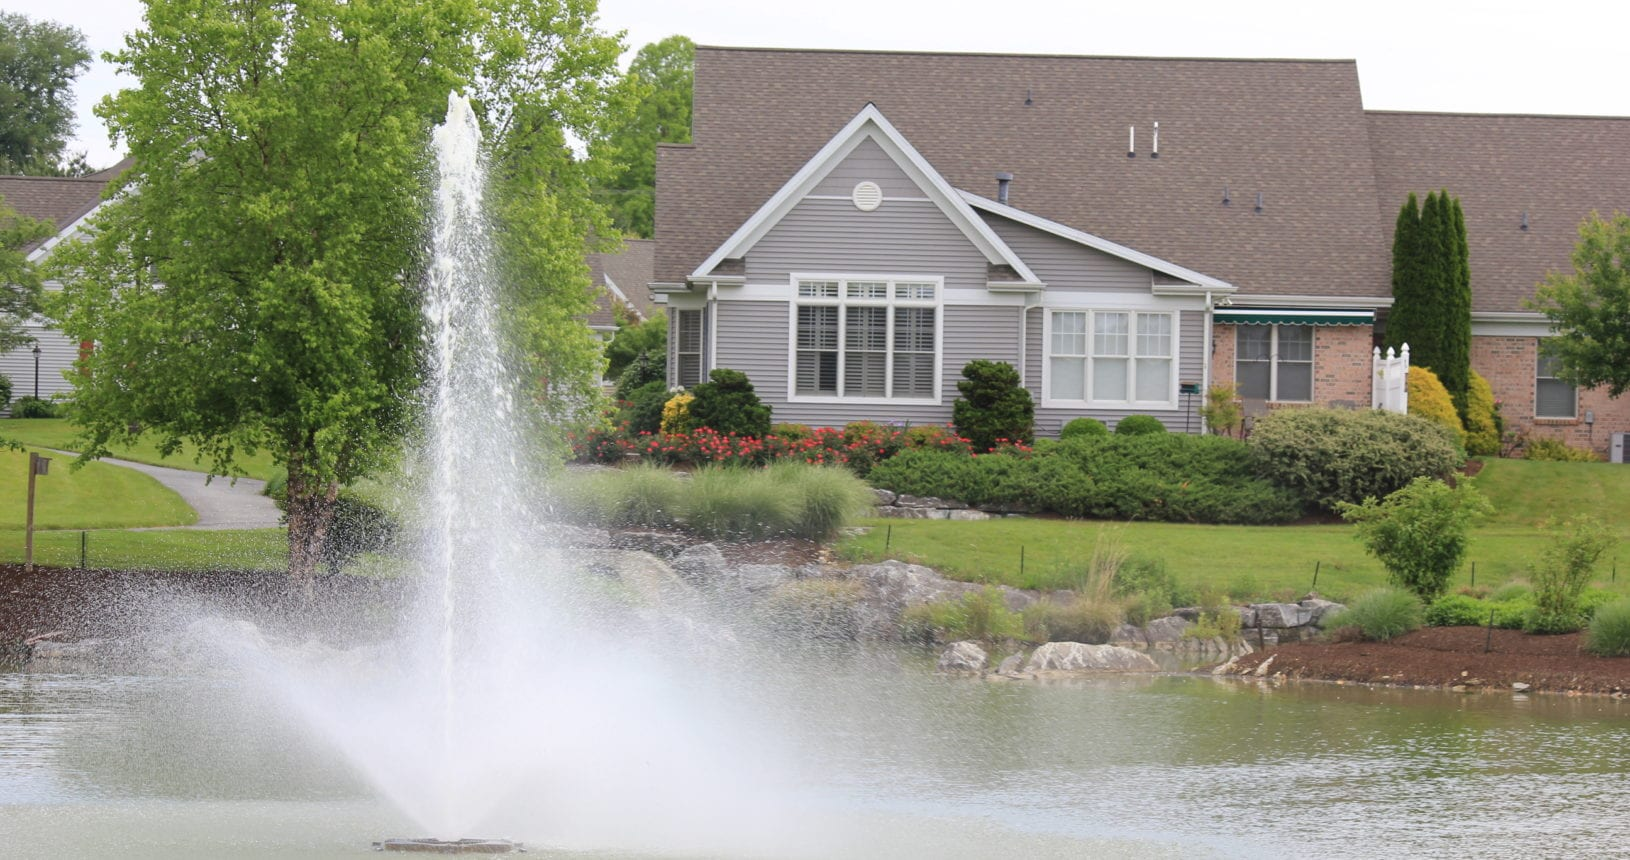 A Beautiful Fountain graces the Mews at Homestead Village